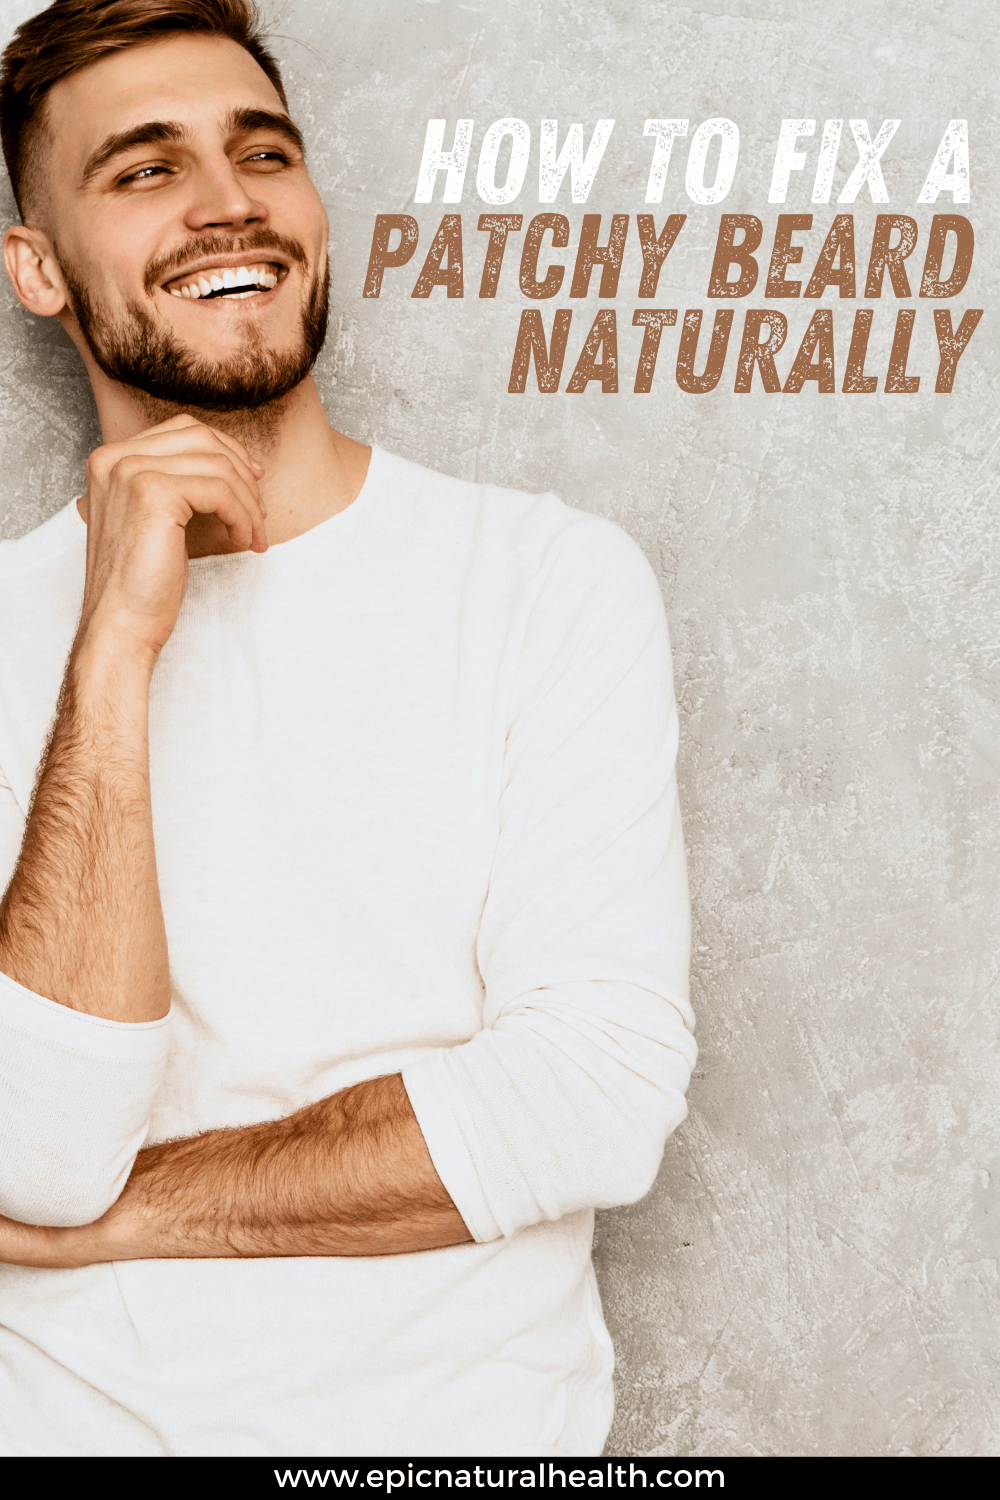 How to fix a patchy beard naturally